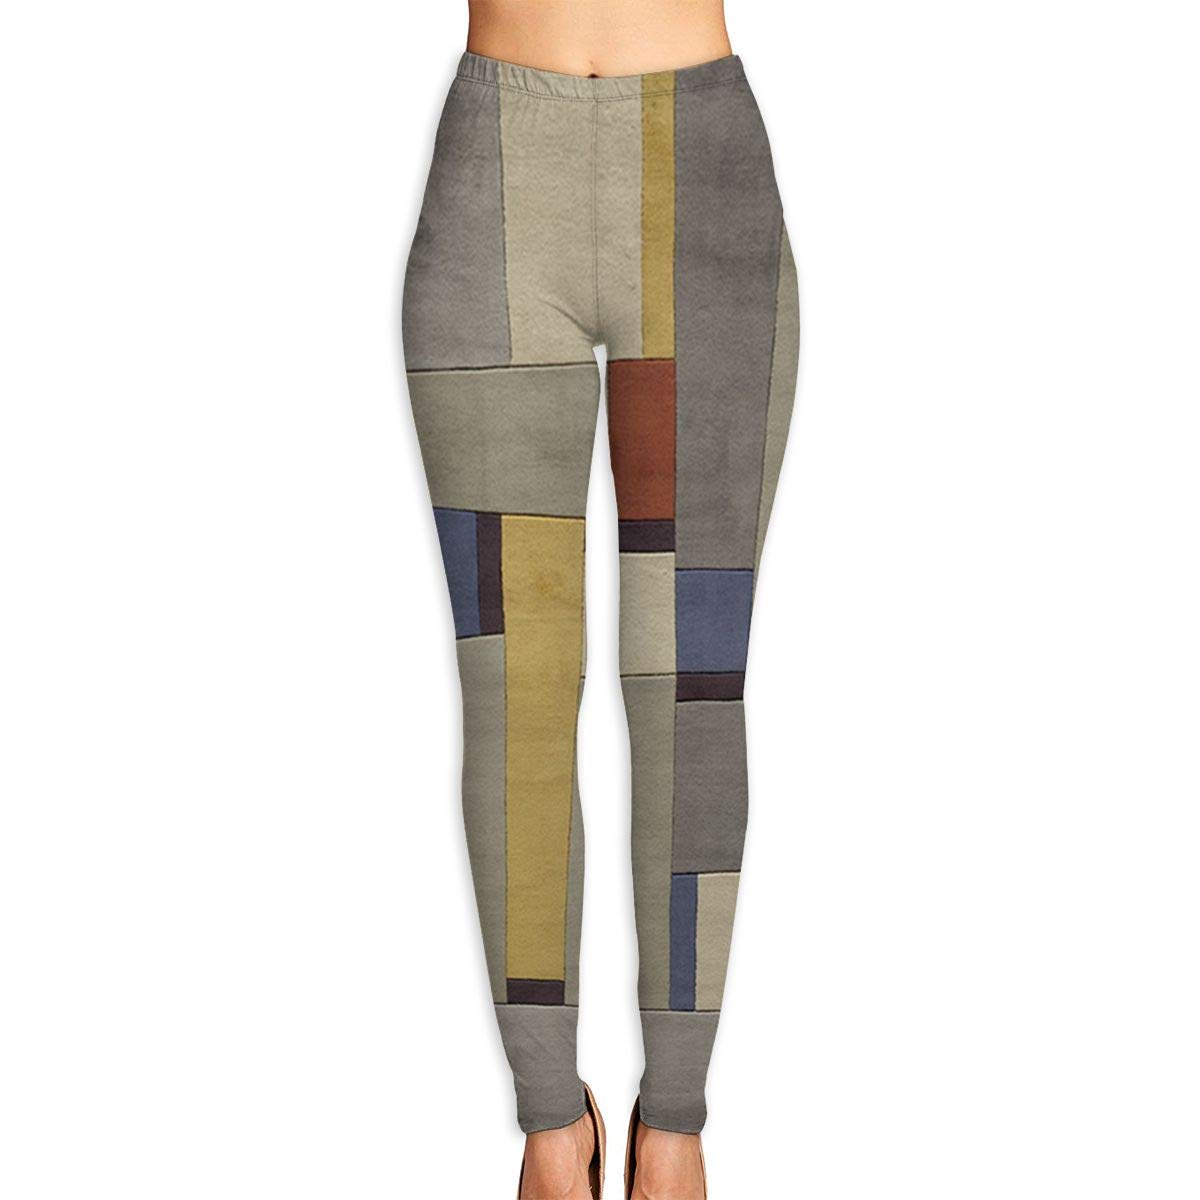 Amazon.com: FFitgm7e Lattice Compression Yoga Pants High ...